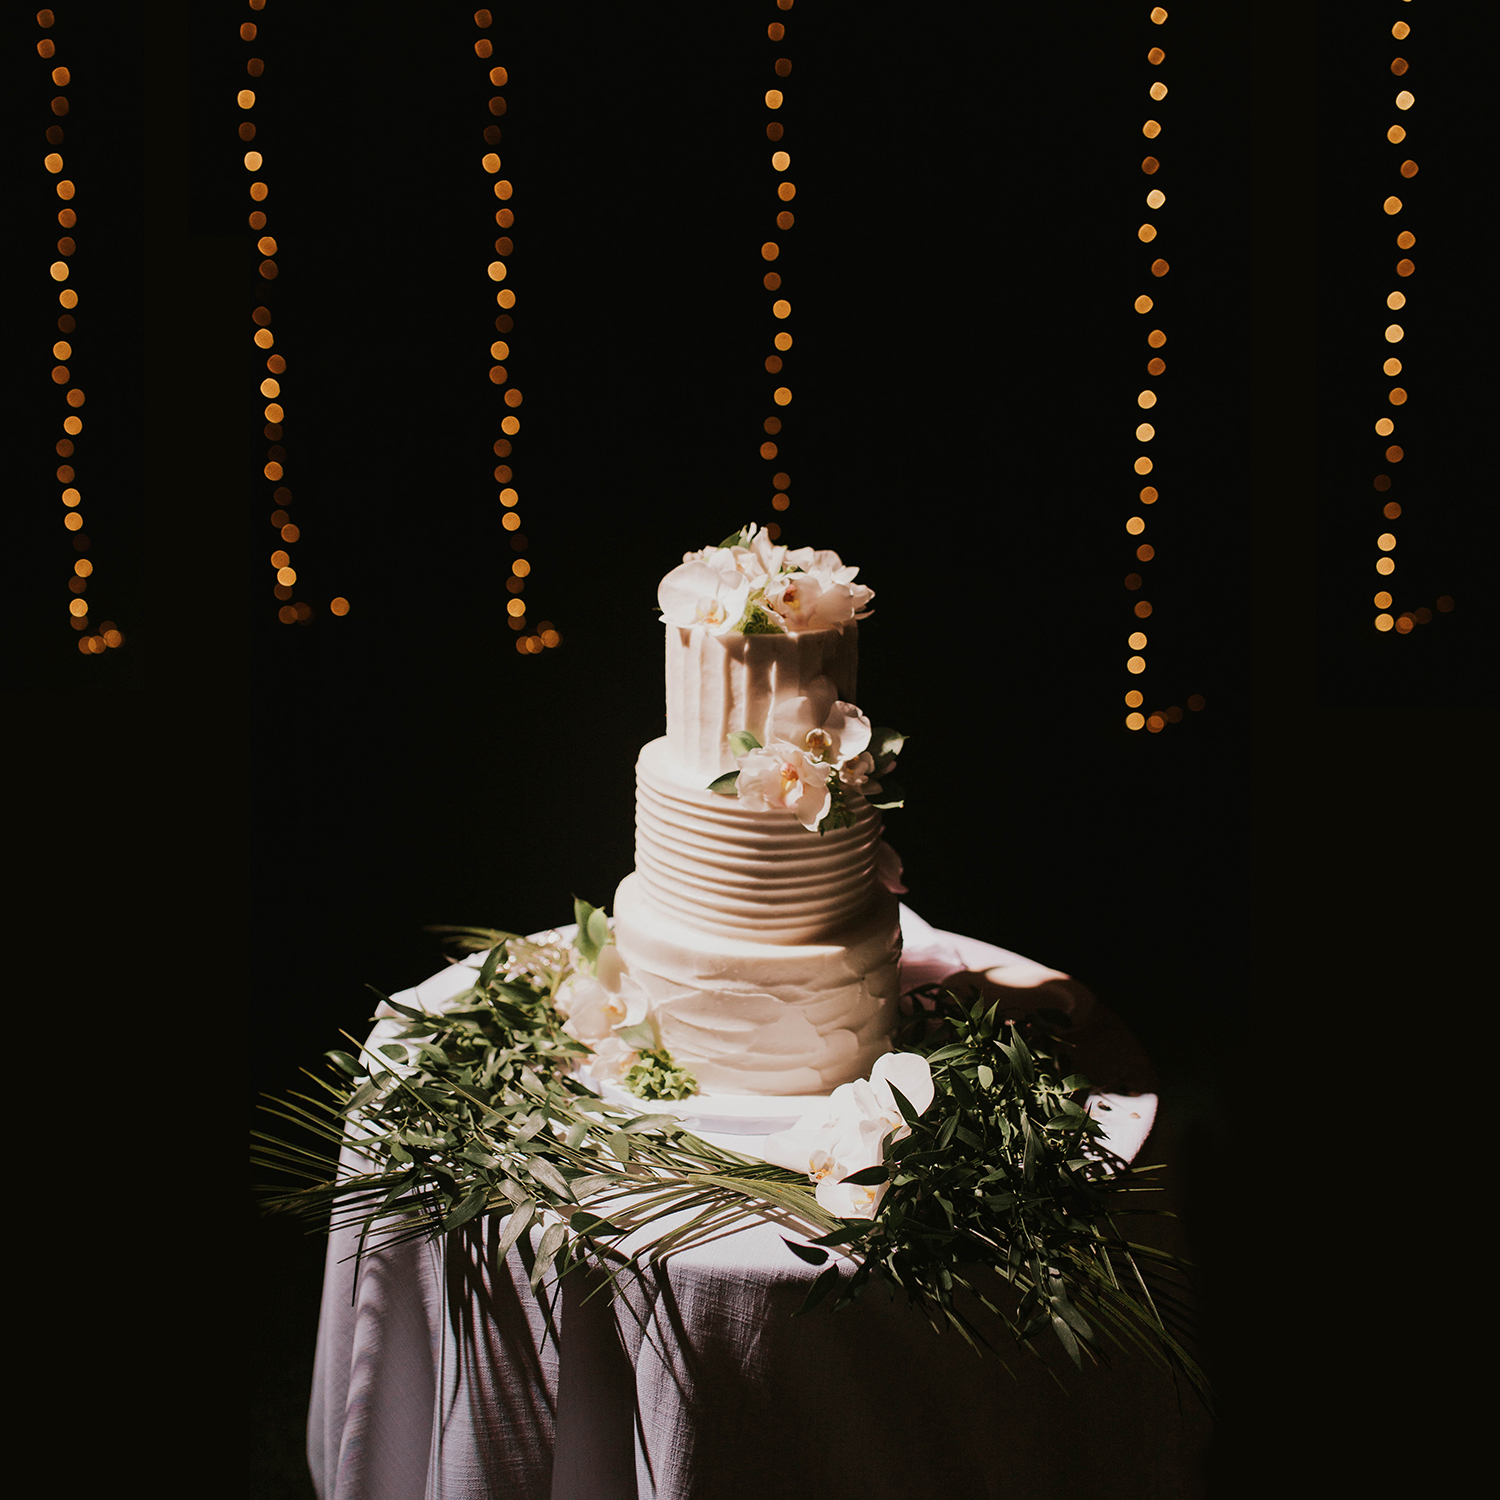 A Cake Life Wedding Cake Ideas Inspiration